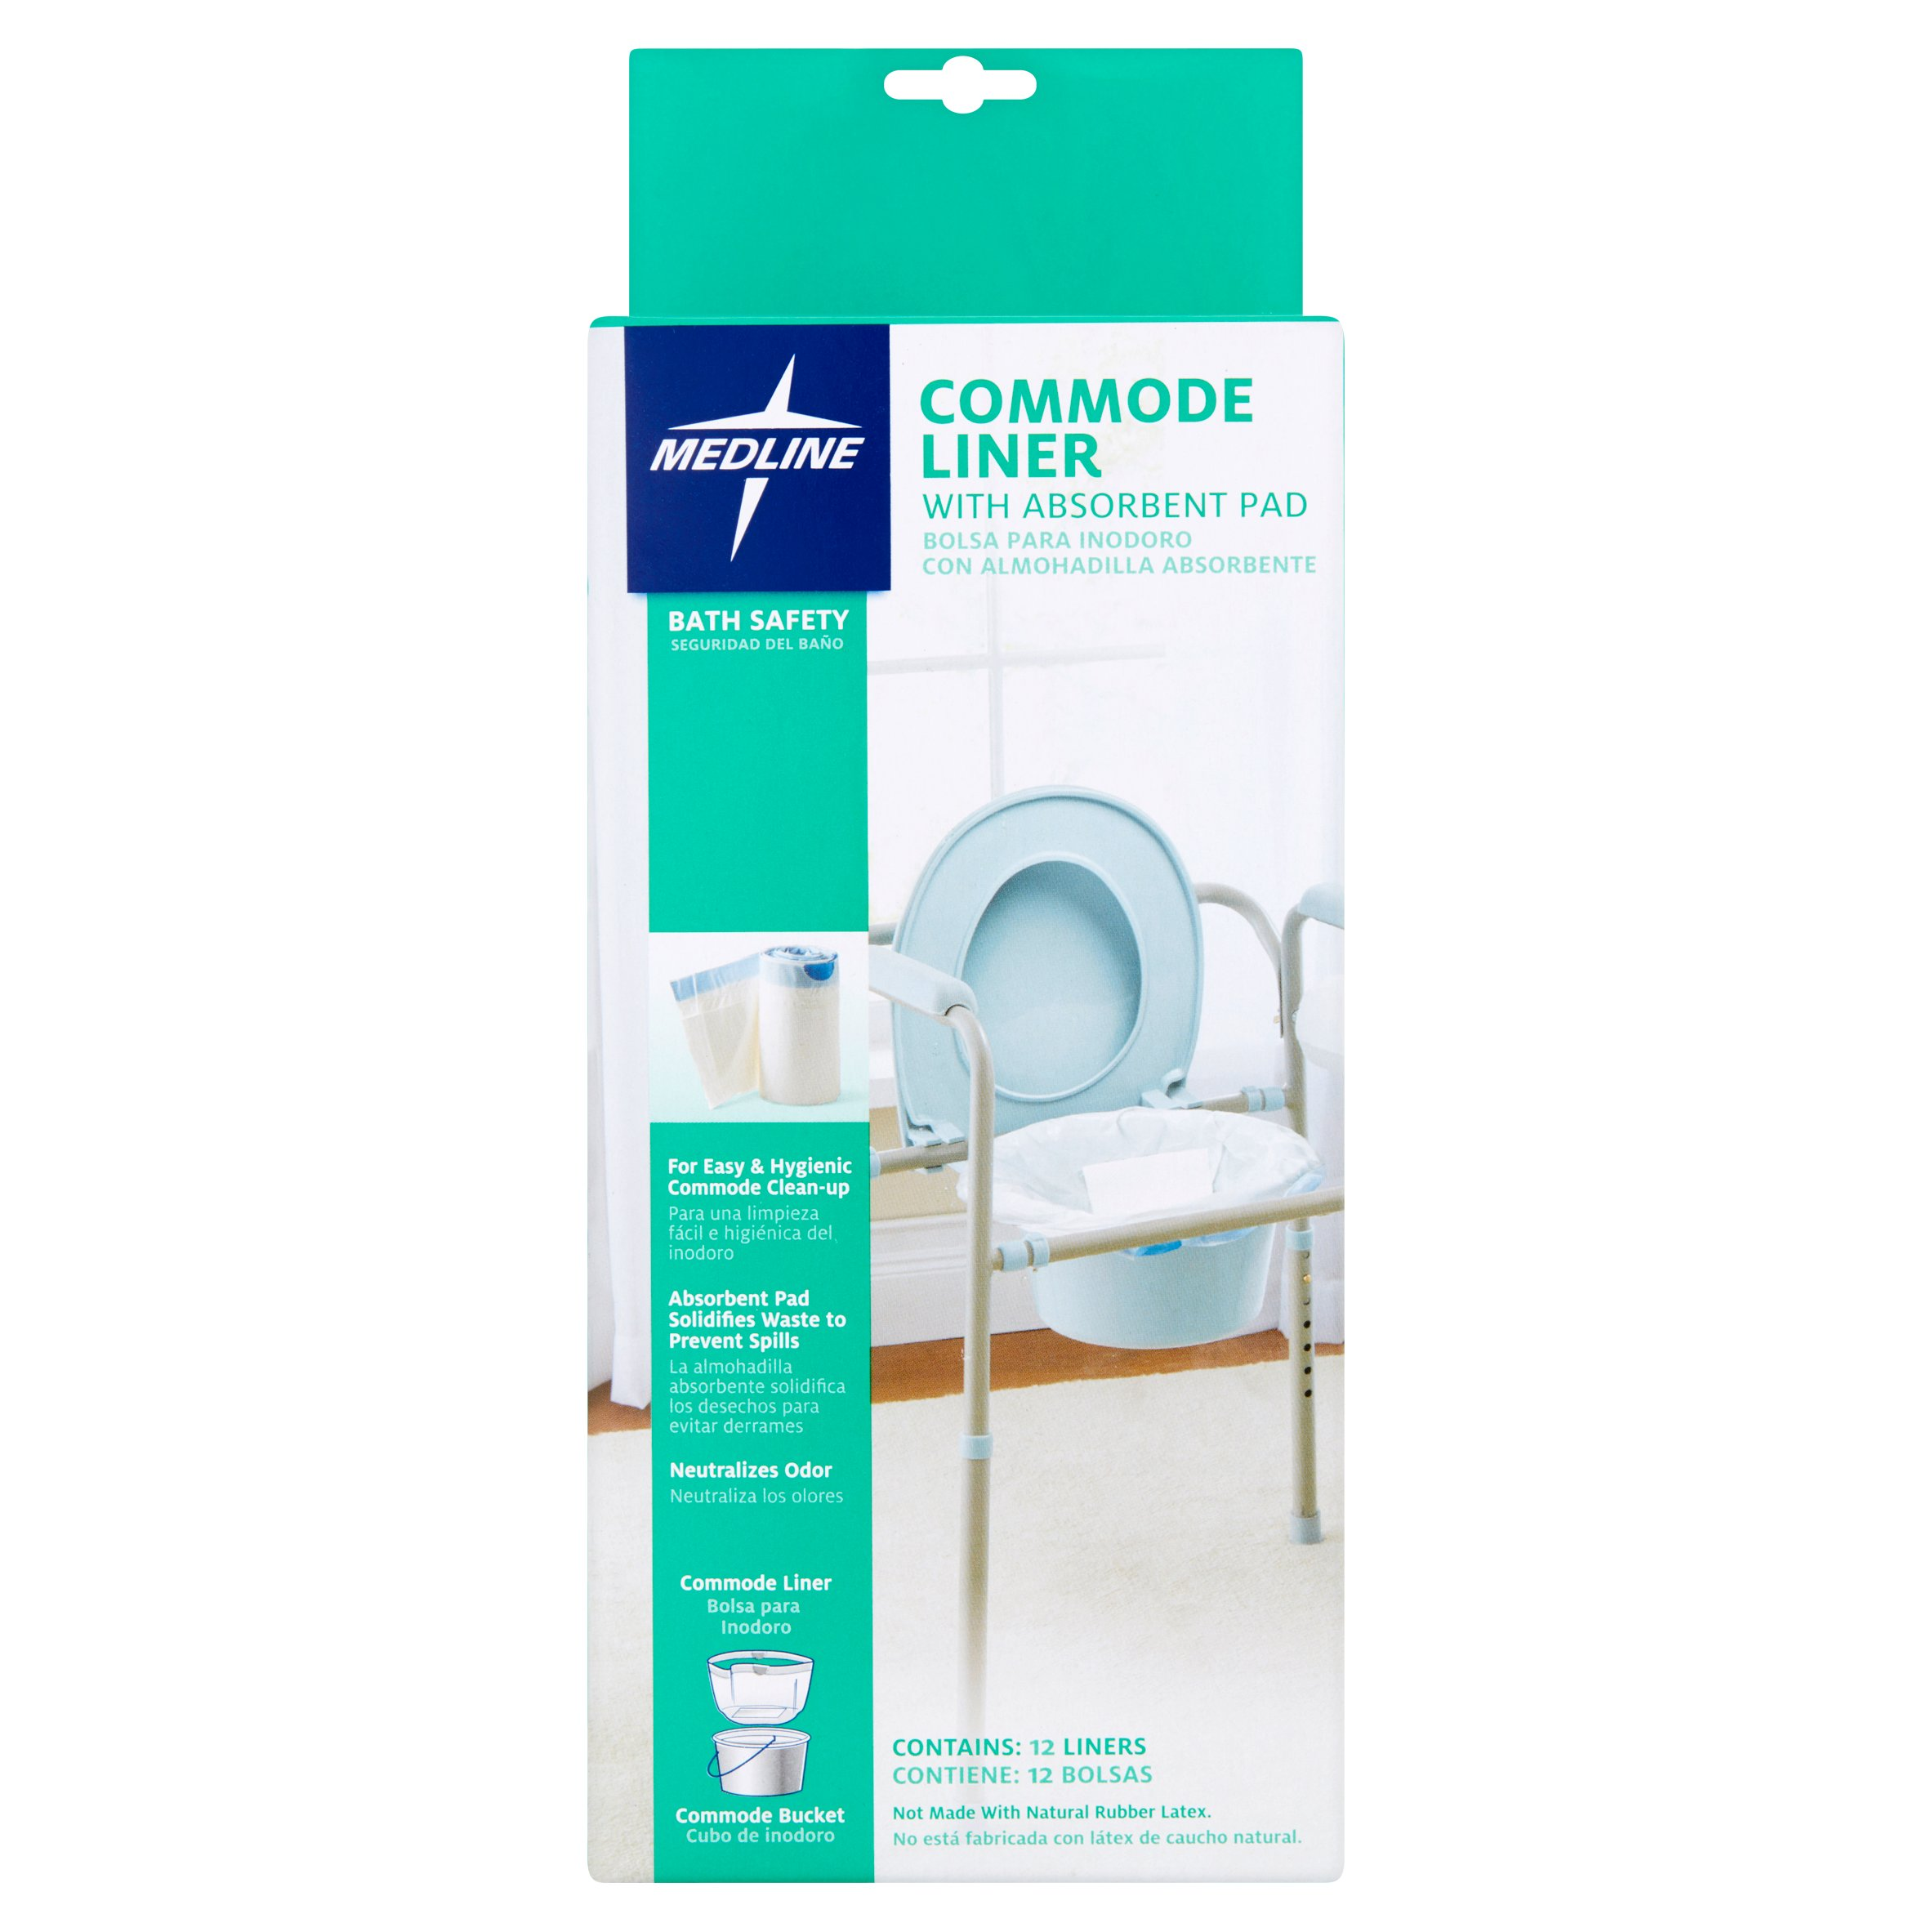 Medline Commode Liner with Absorbent Pad, 12 count